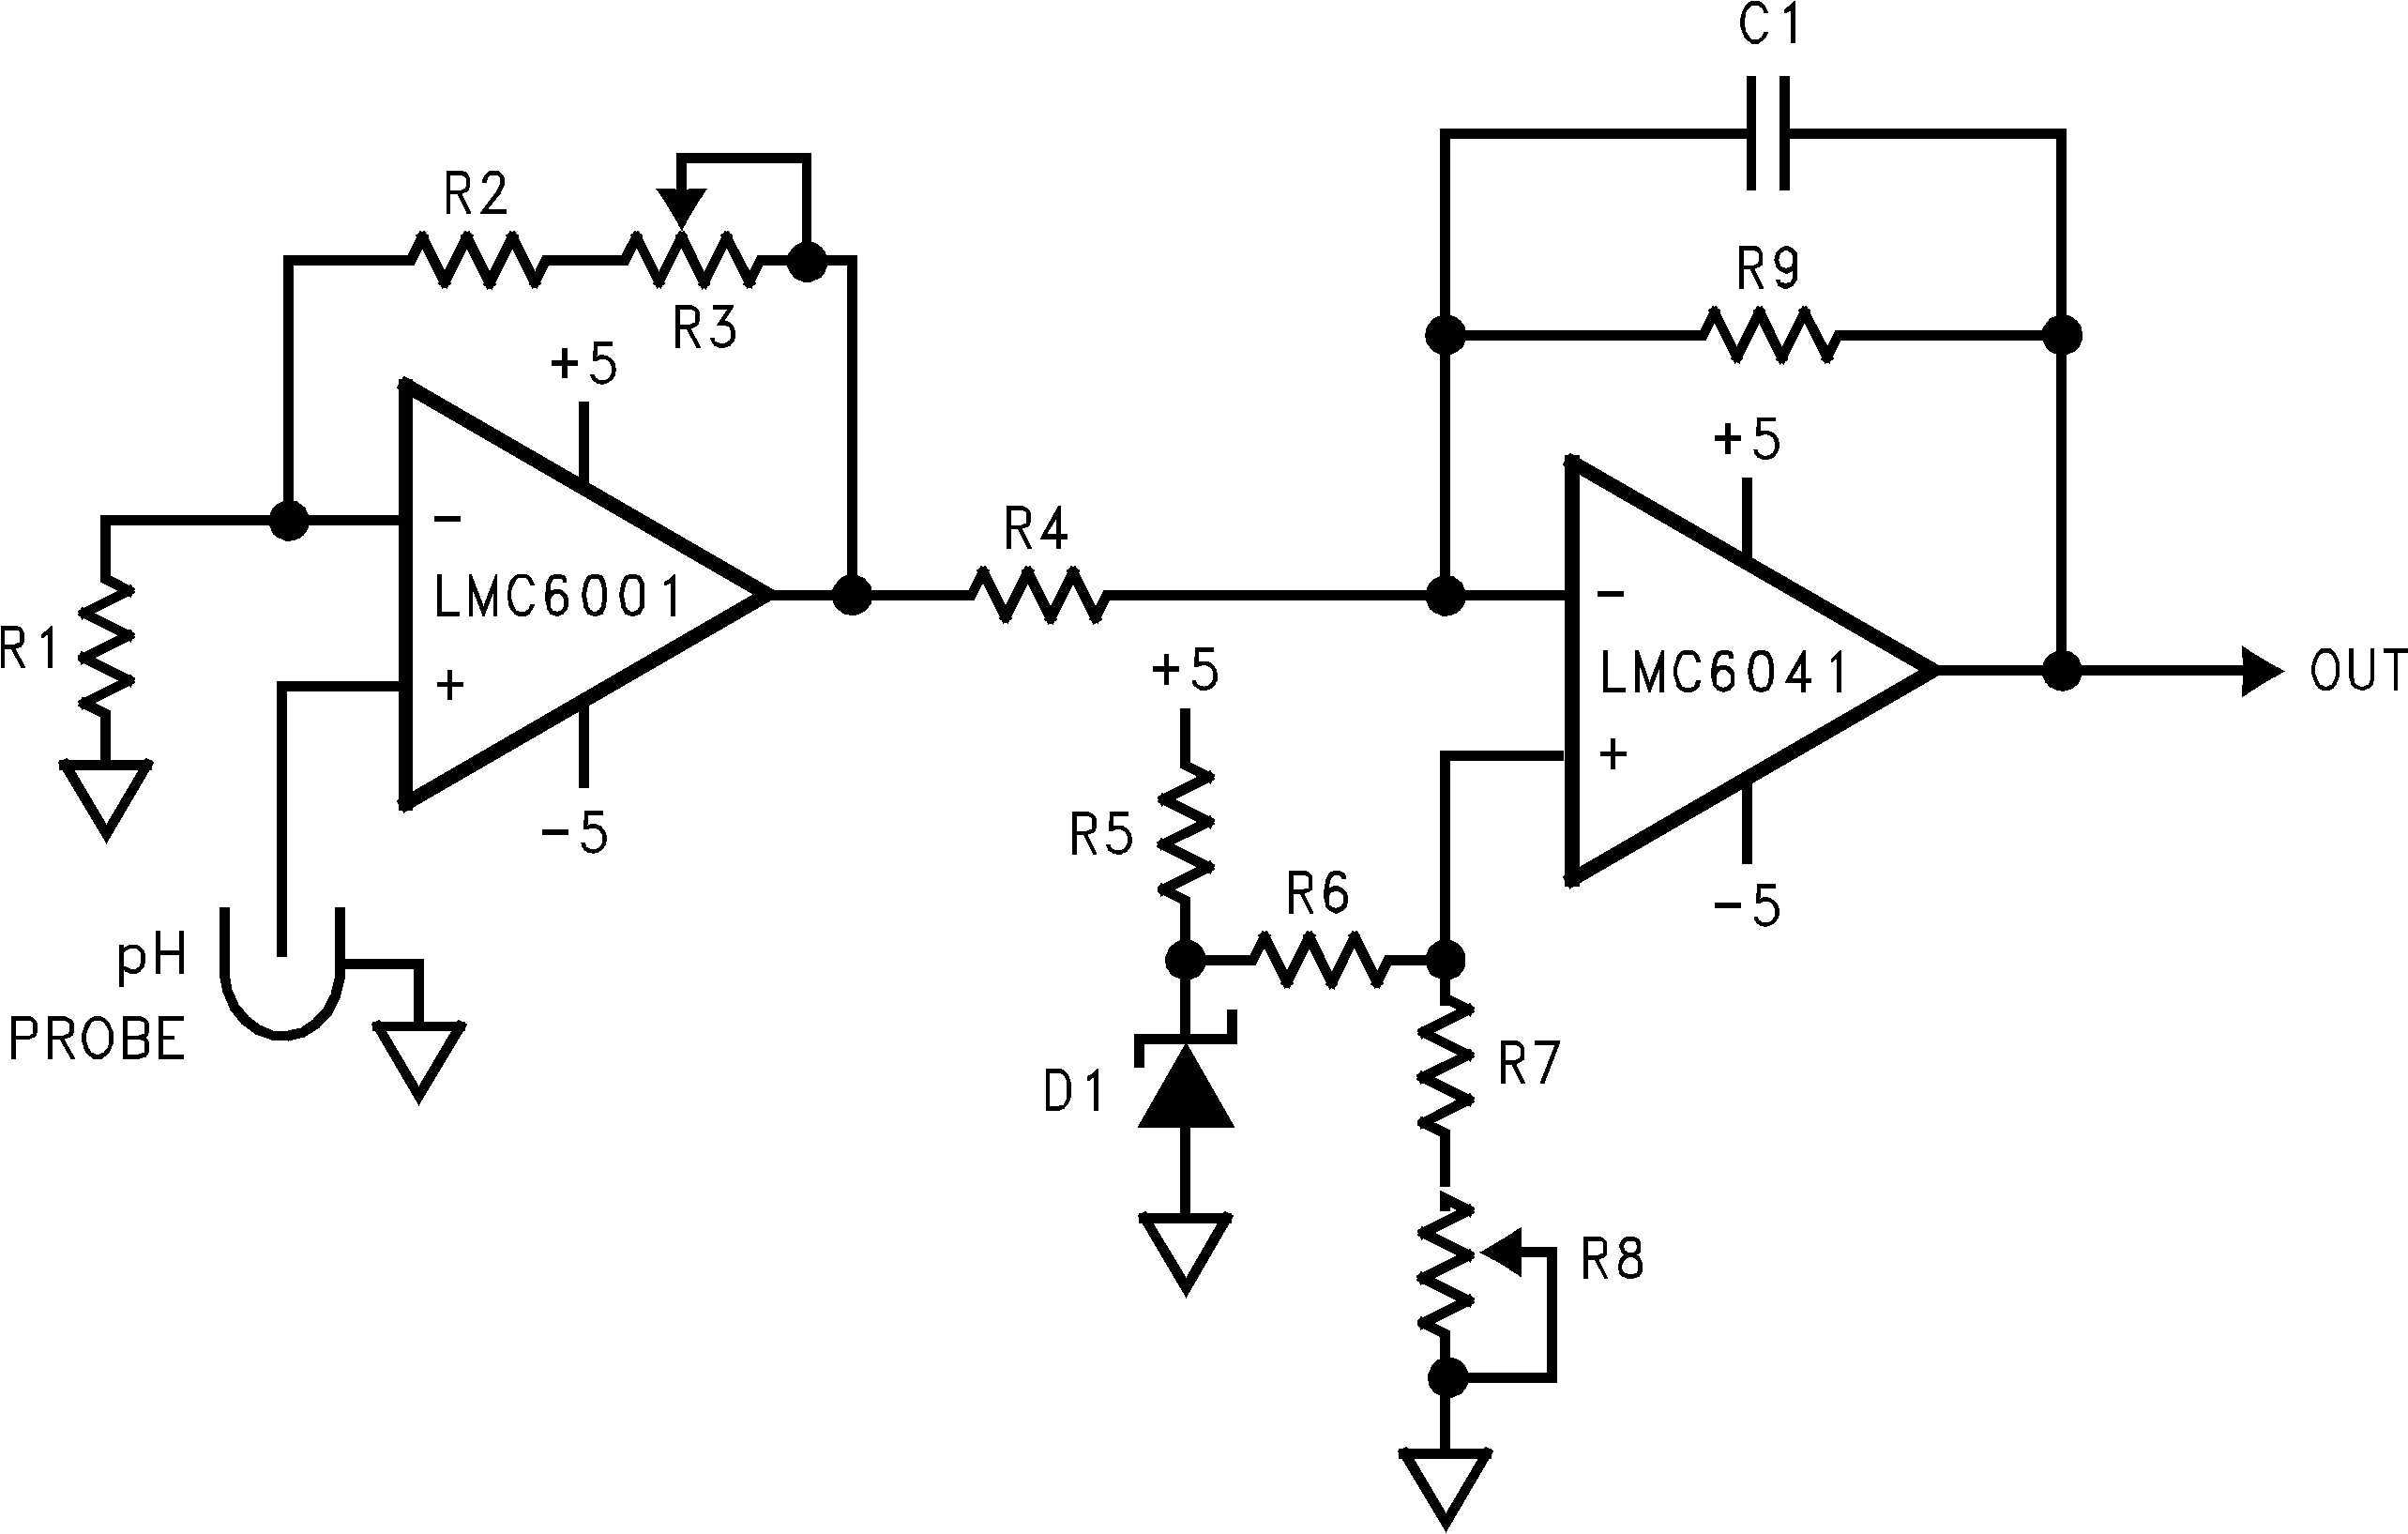 Lmc6001 Op Amp Non Inverting Amplifier Circuit 1188715